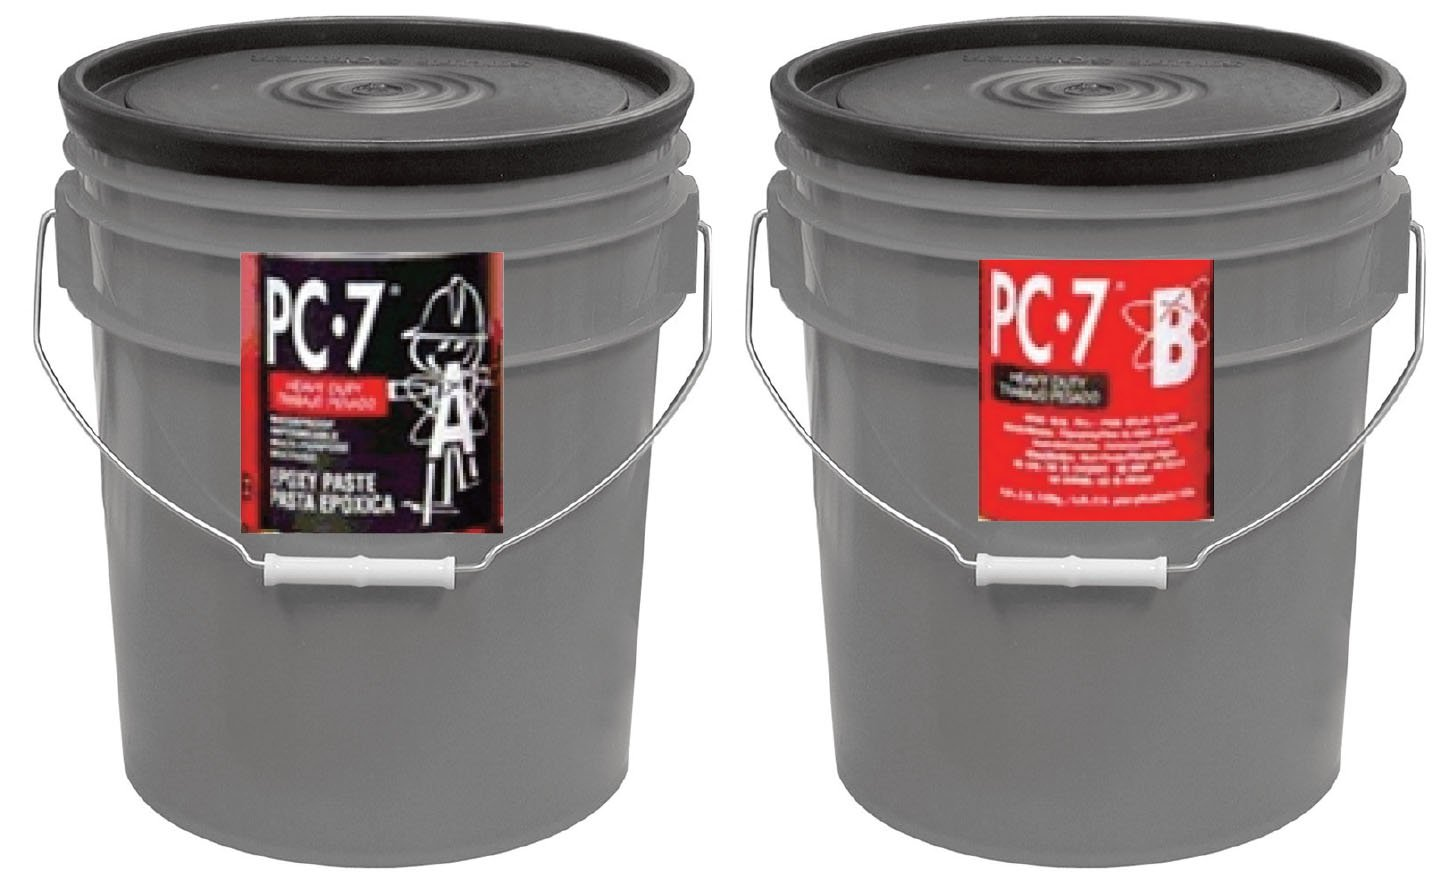 PC Products 909072 PC-7 Two-Part Heavy Duty Multipurpose Epoxy Adhesive Paste, 10 gal in Two Pails, Charcoal Gray